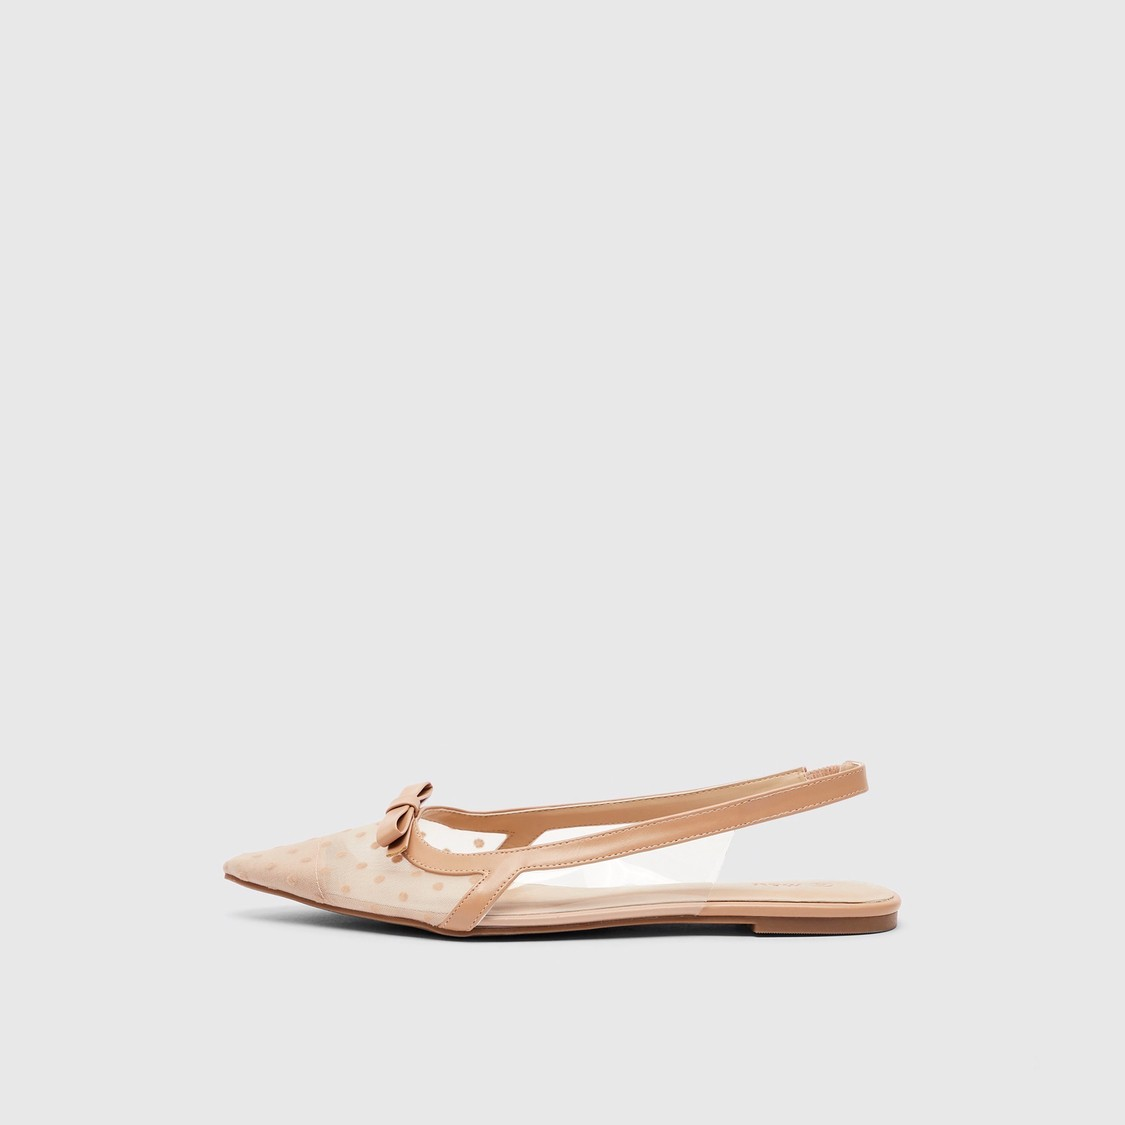 Pointed Toe Slip-On Flat Sandals with Bow Accent